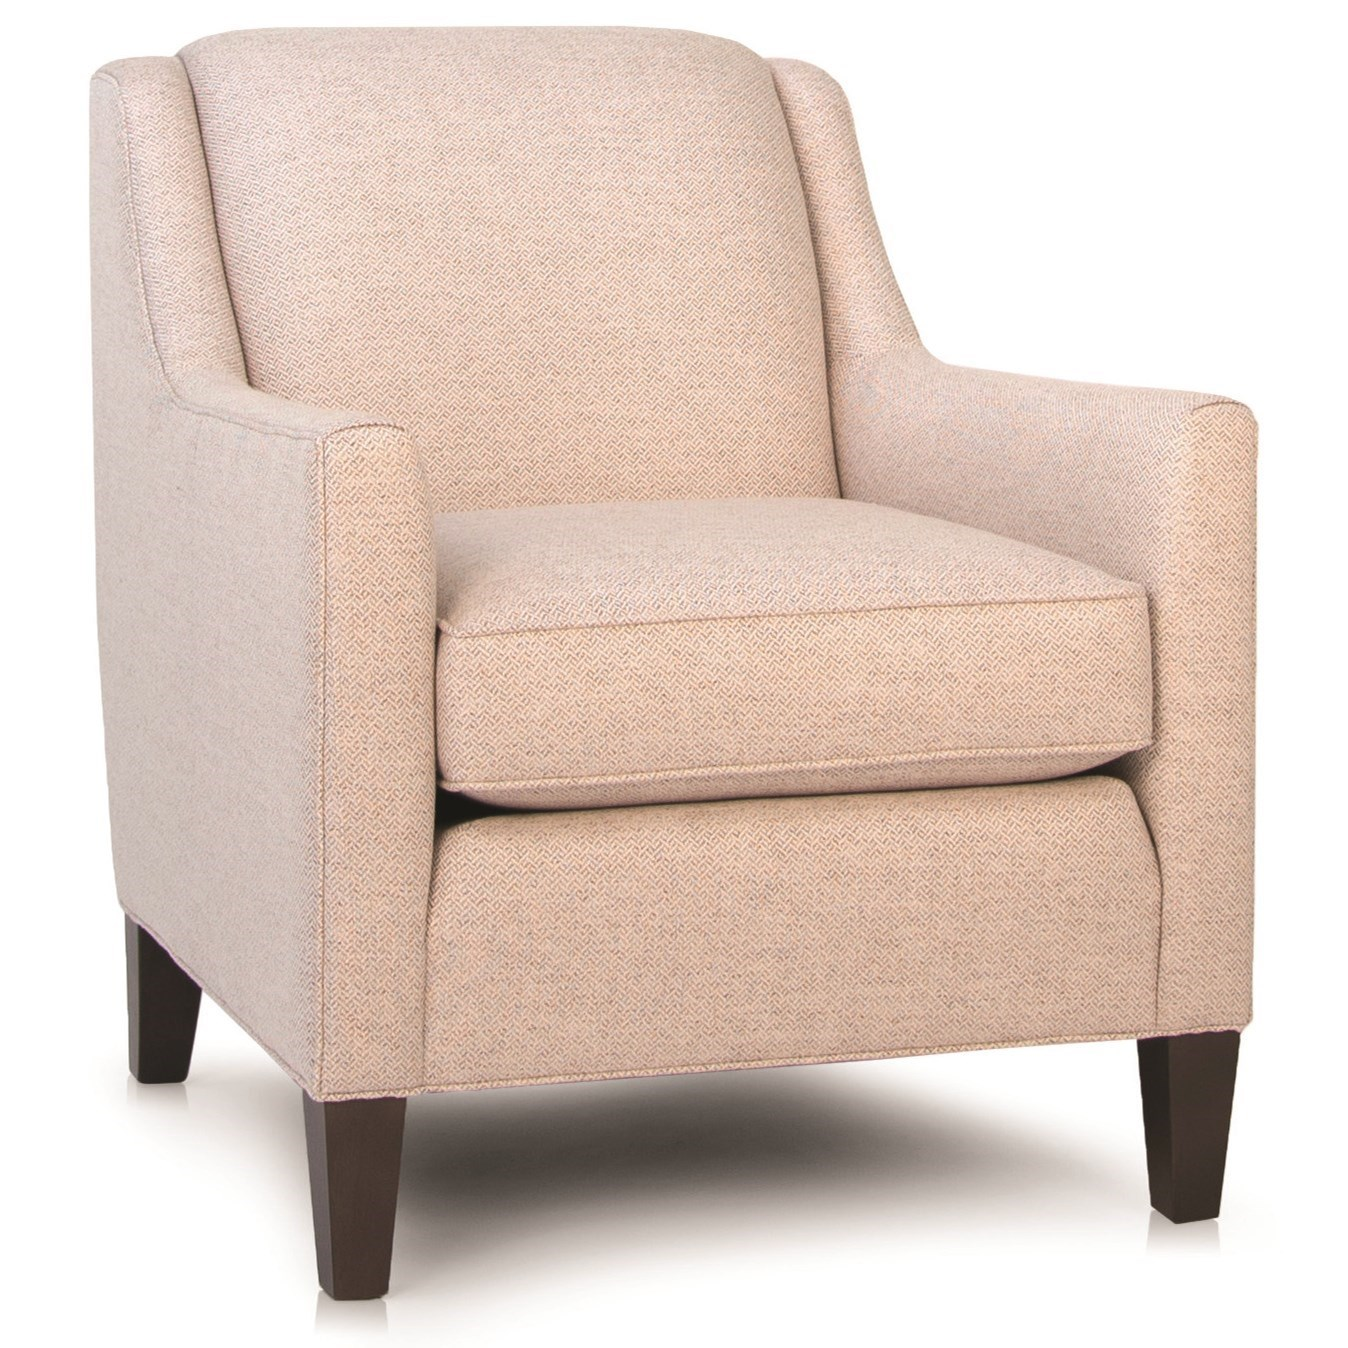 248 Chair by Smith Brothers at Pilgrim Furniture City